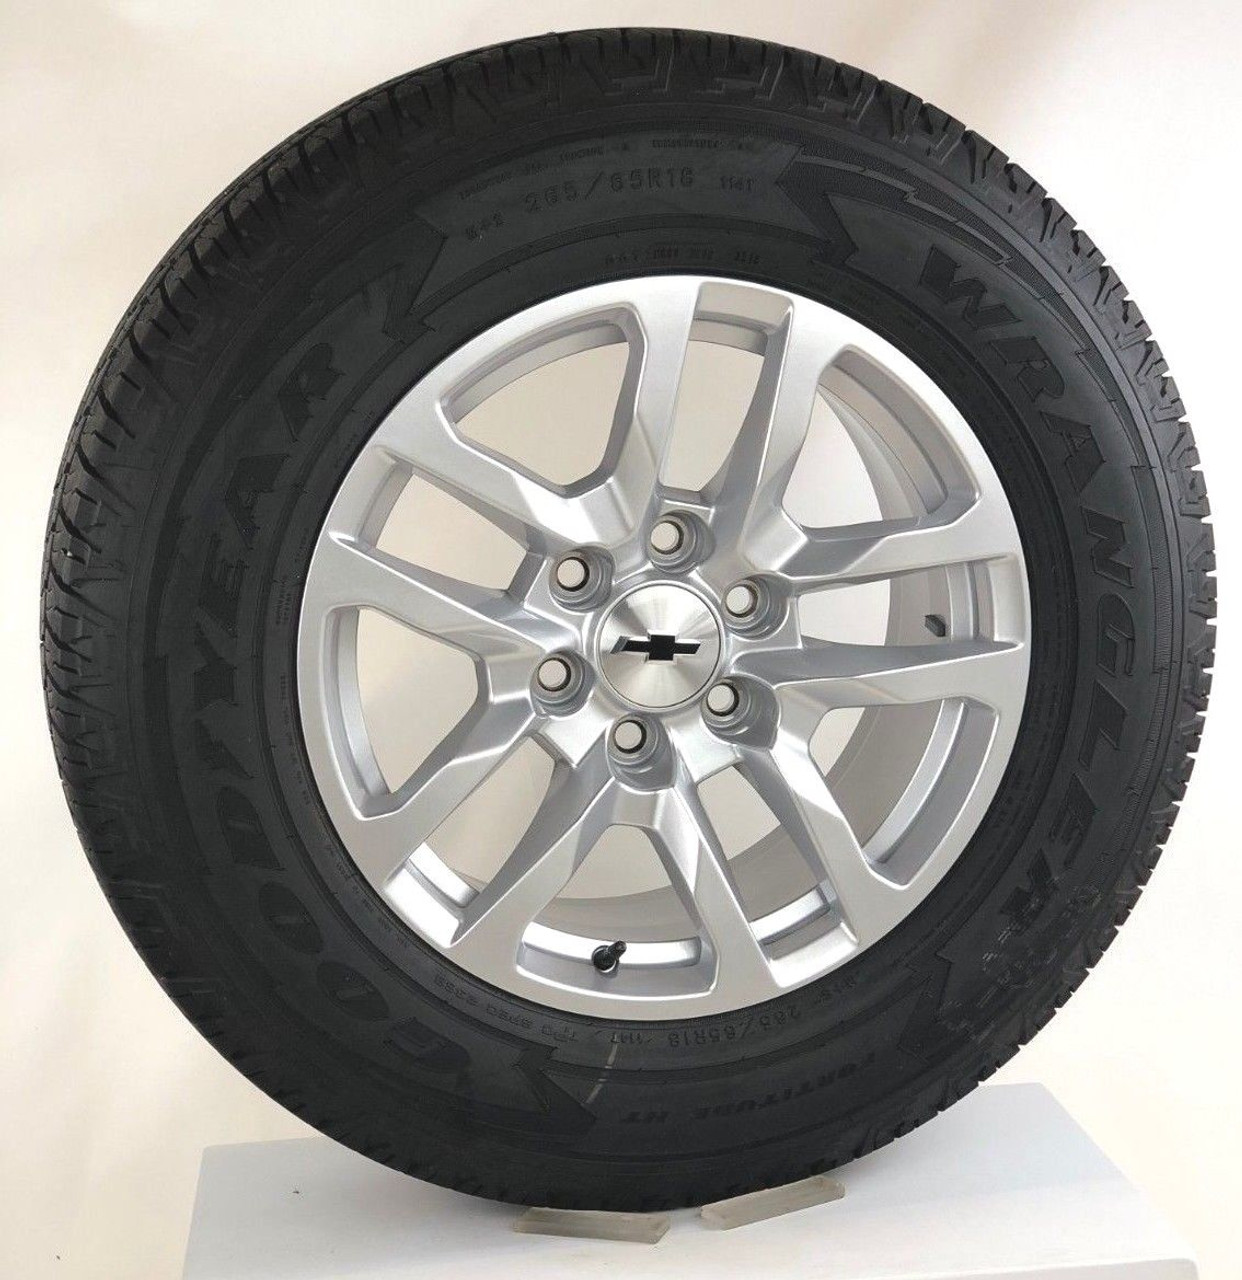 "New Takeoff 2019 Chevy 18"" Wheels with Goodyear Tires"